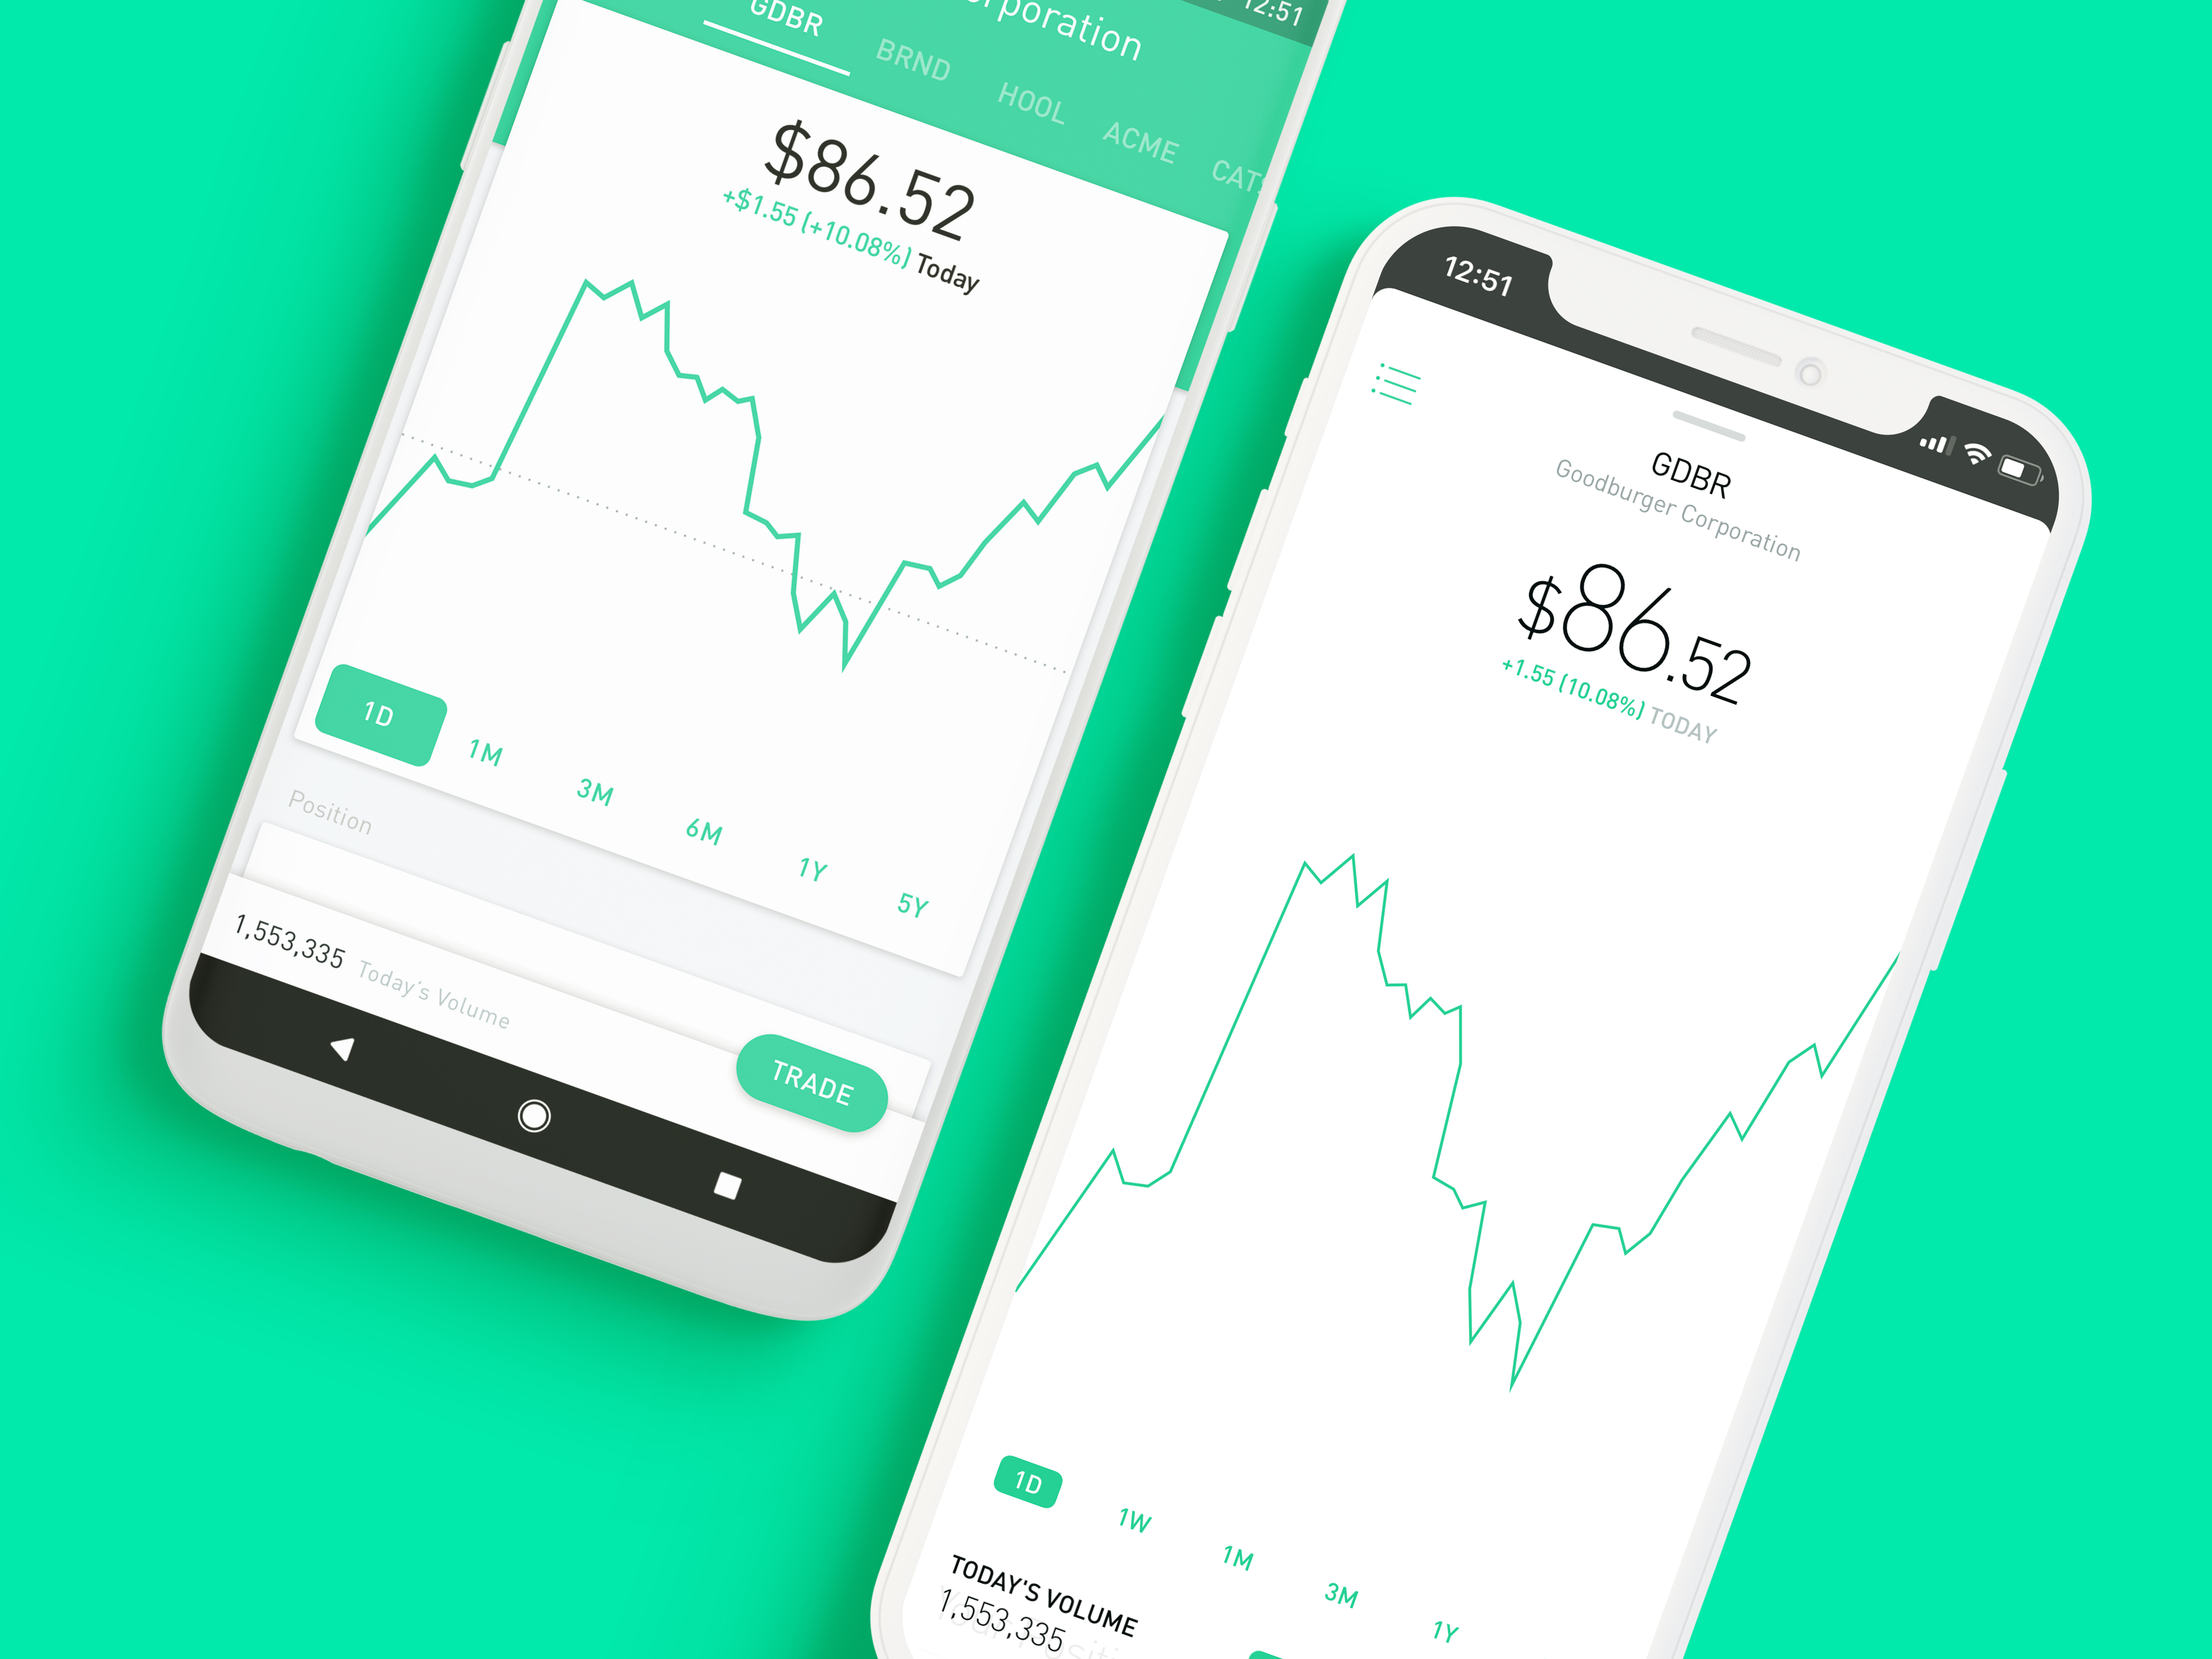 dowa crypto count as a day trade on robinhood best cryptocurrencies to swing trade